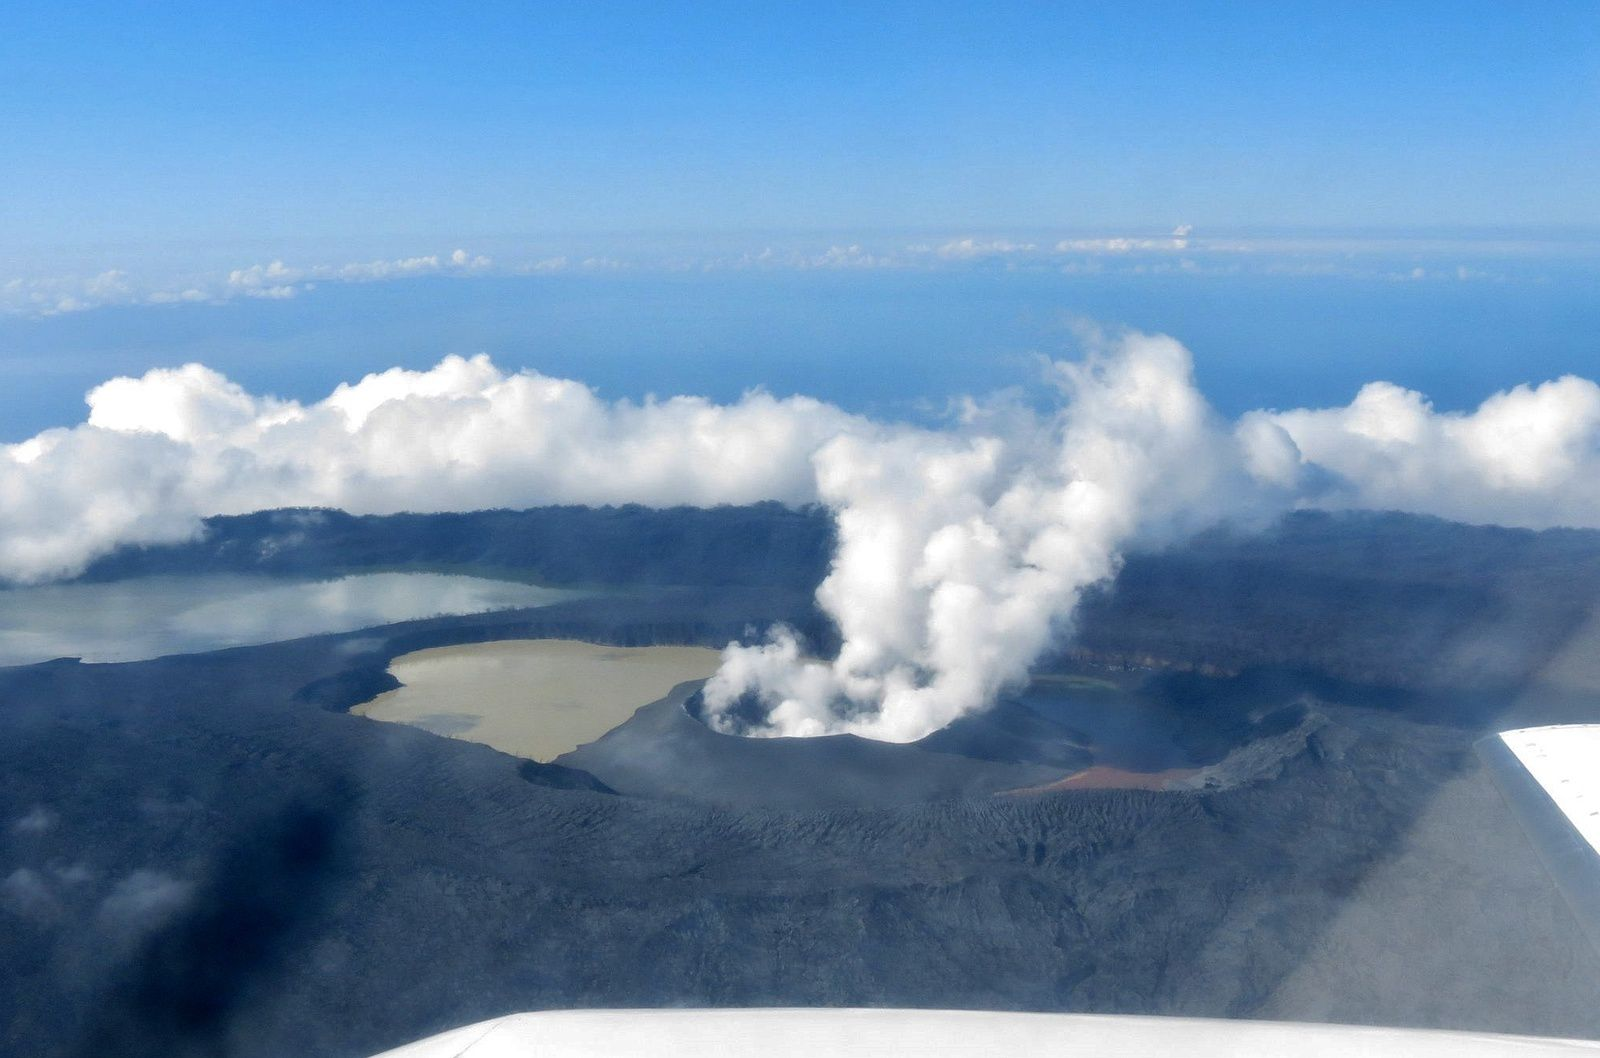 Ambae - volcanic cone separates Lake Voui into two parts, and ash emissions have stopped for the moment - photo 21.04.2018 Brad Scott / VGO